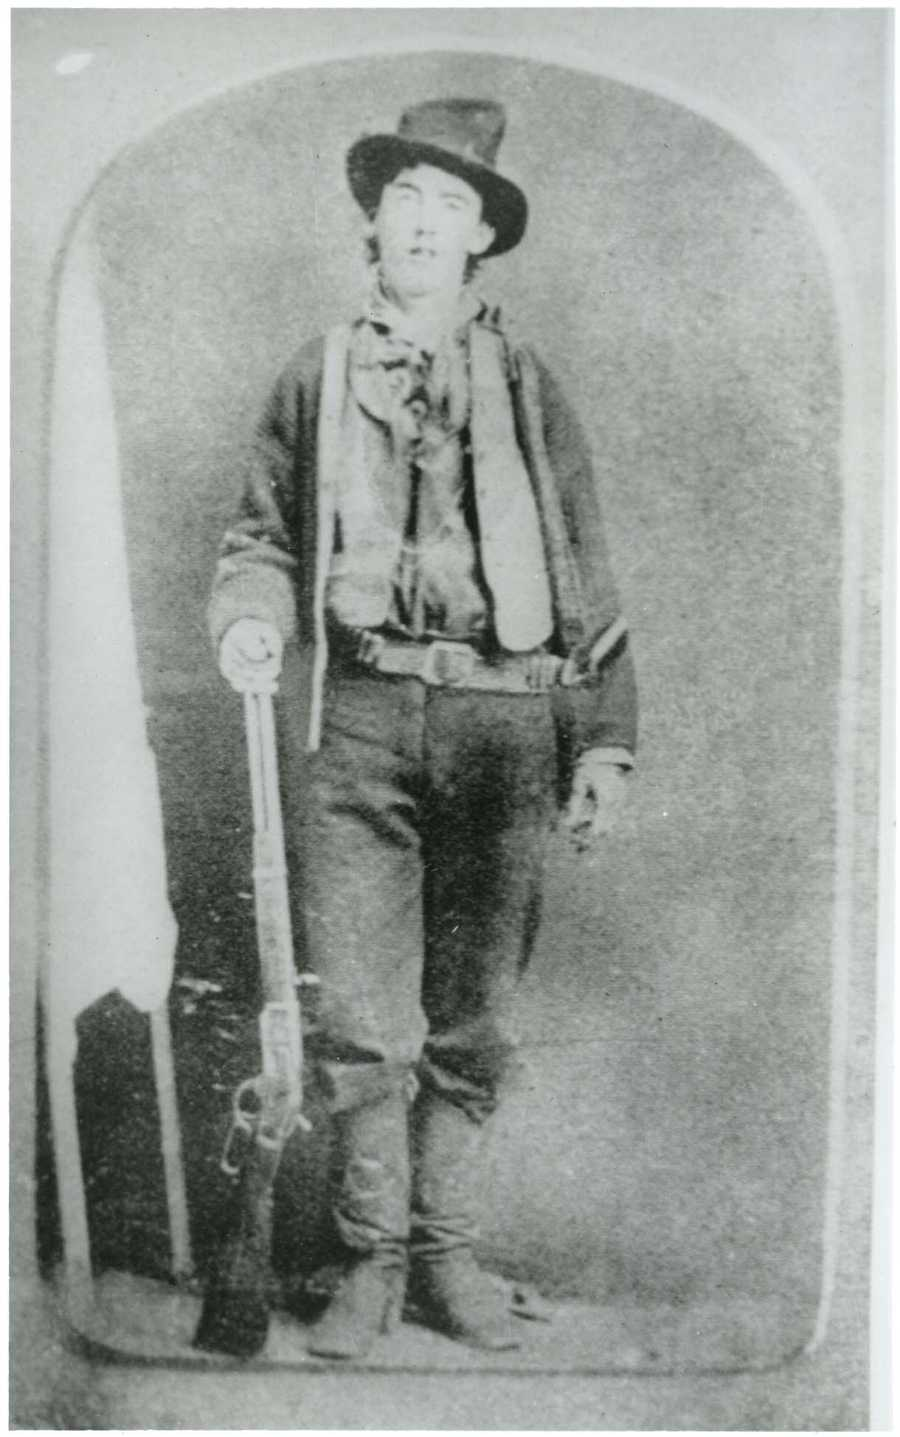 Billy the Kid was killed on July 14, 1881.